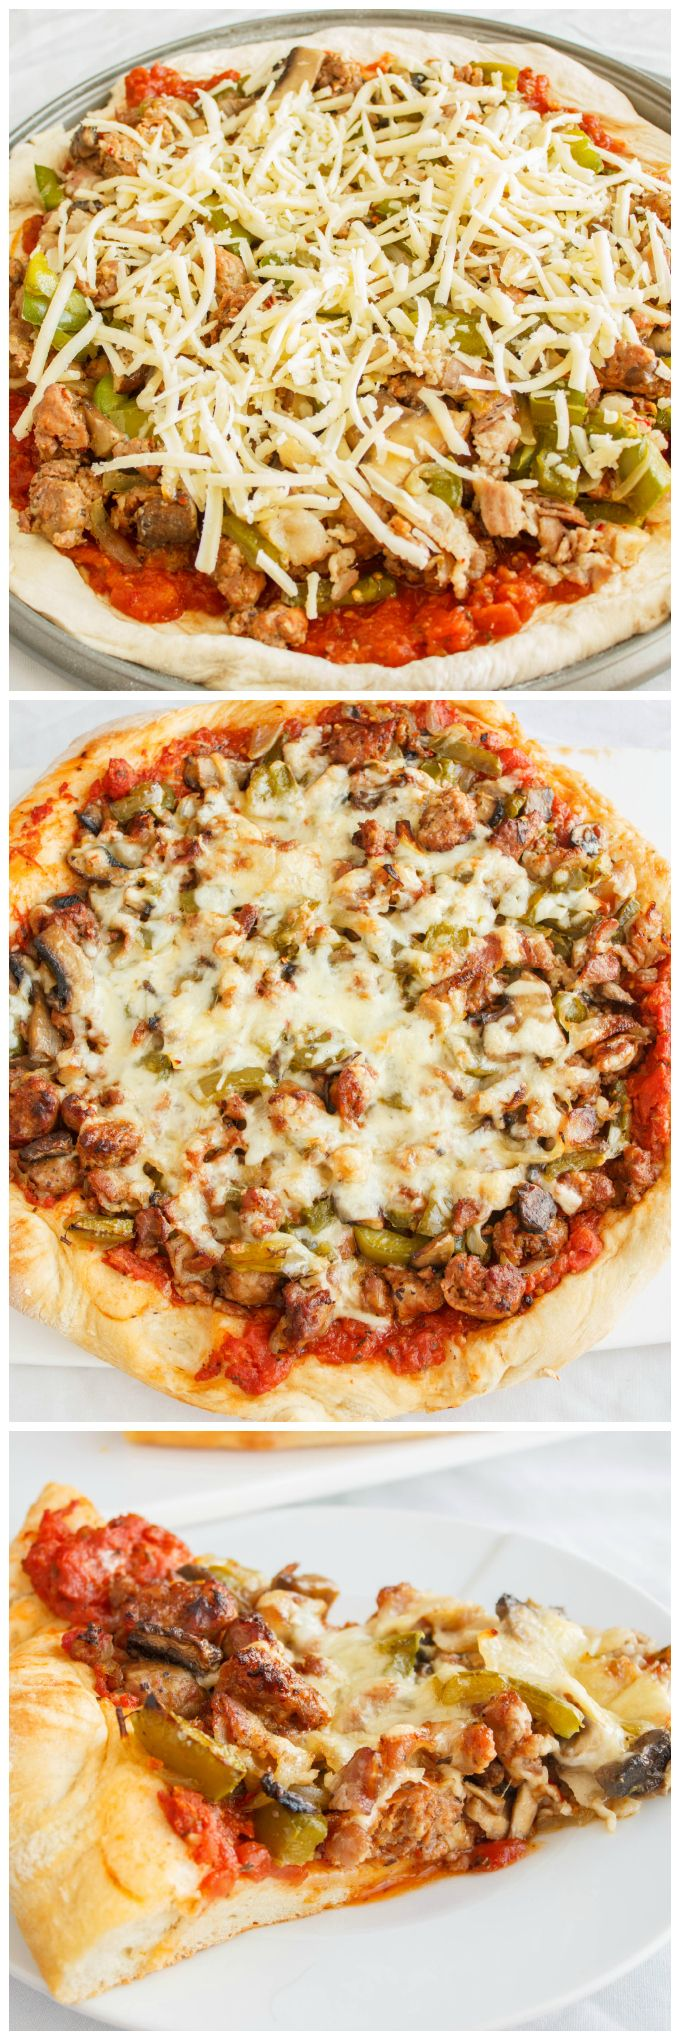 Sausage Pizza with Onions, Green Peppers, and Bacon | #foodie #pizza #bacon | http://thecookiewriter.com